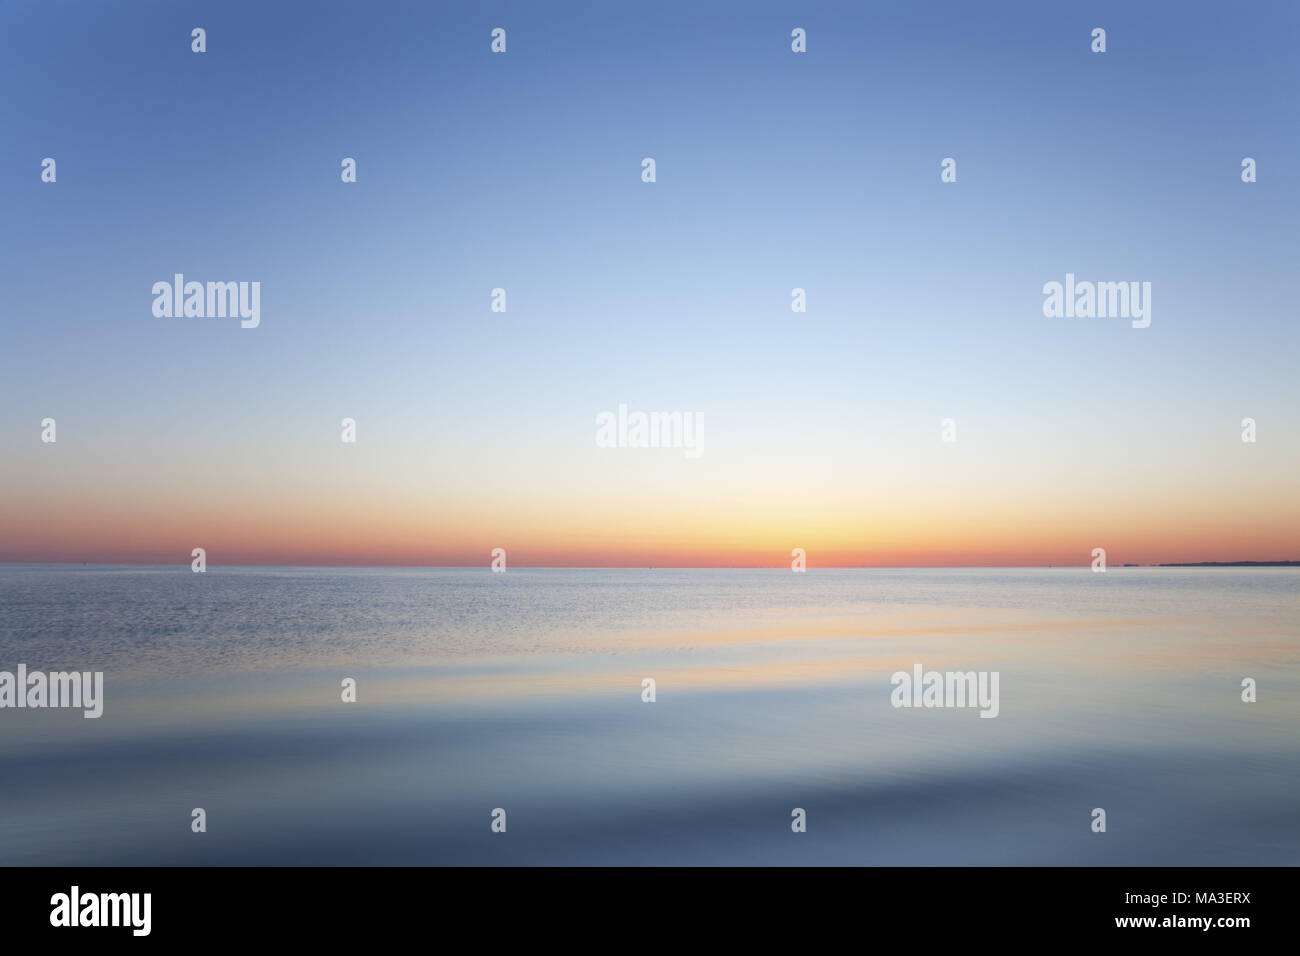 The Baltic Sea with sunrise, Schleswig - Holstein, North Germany, Germany, Stock Photo